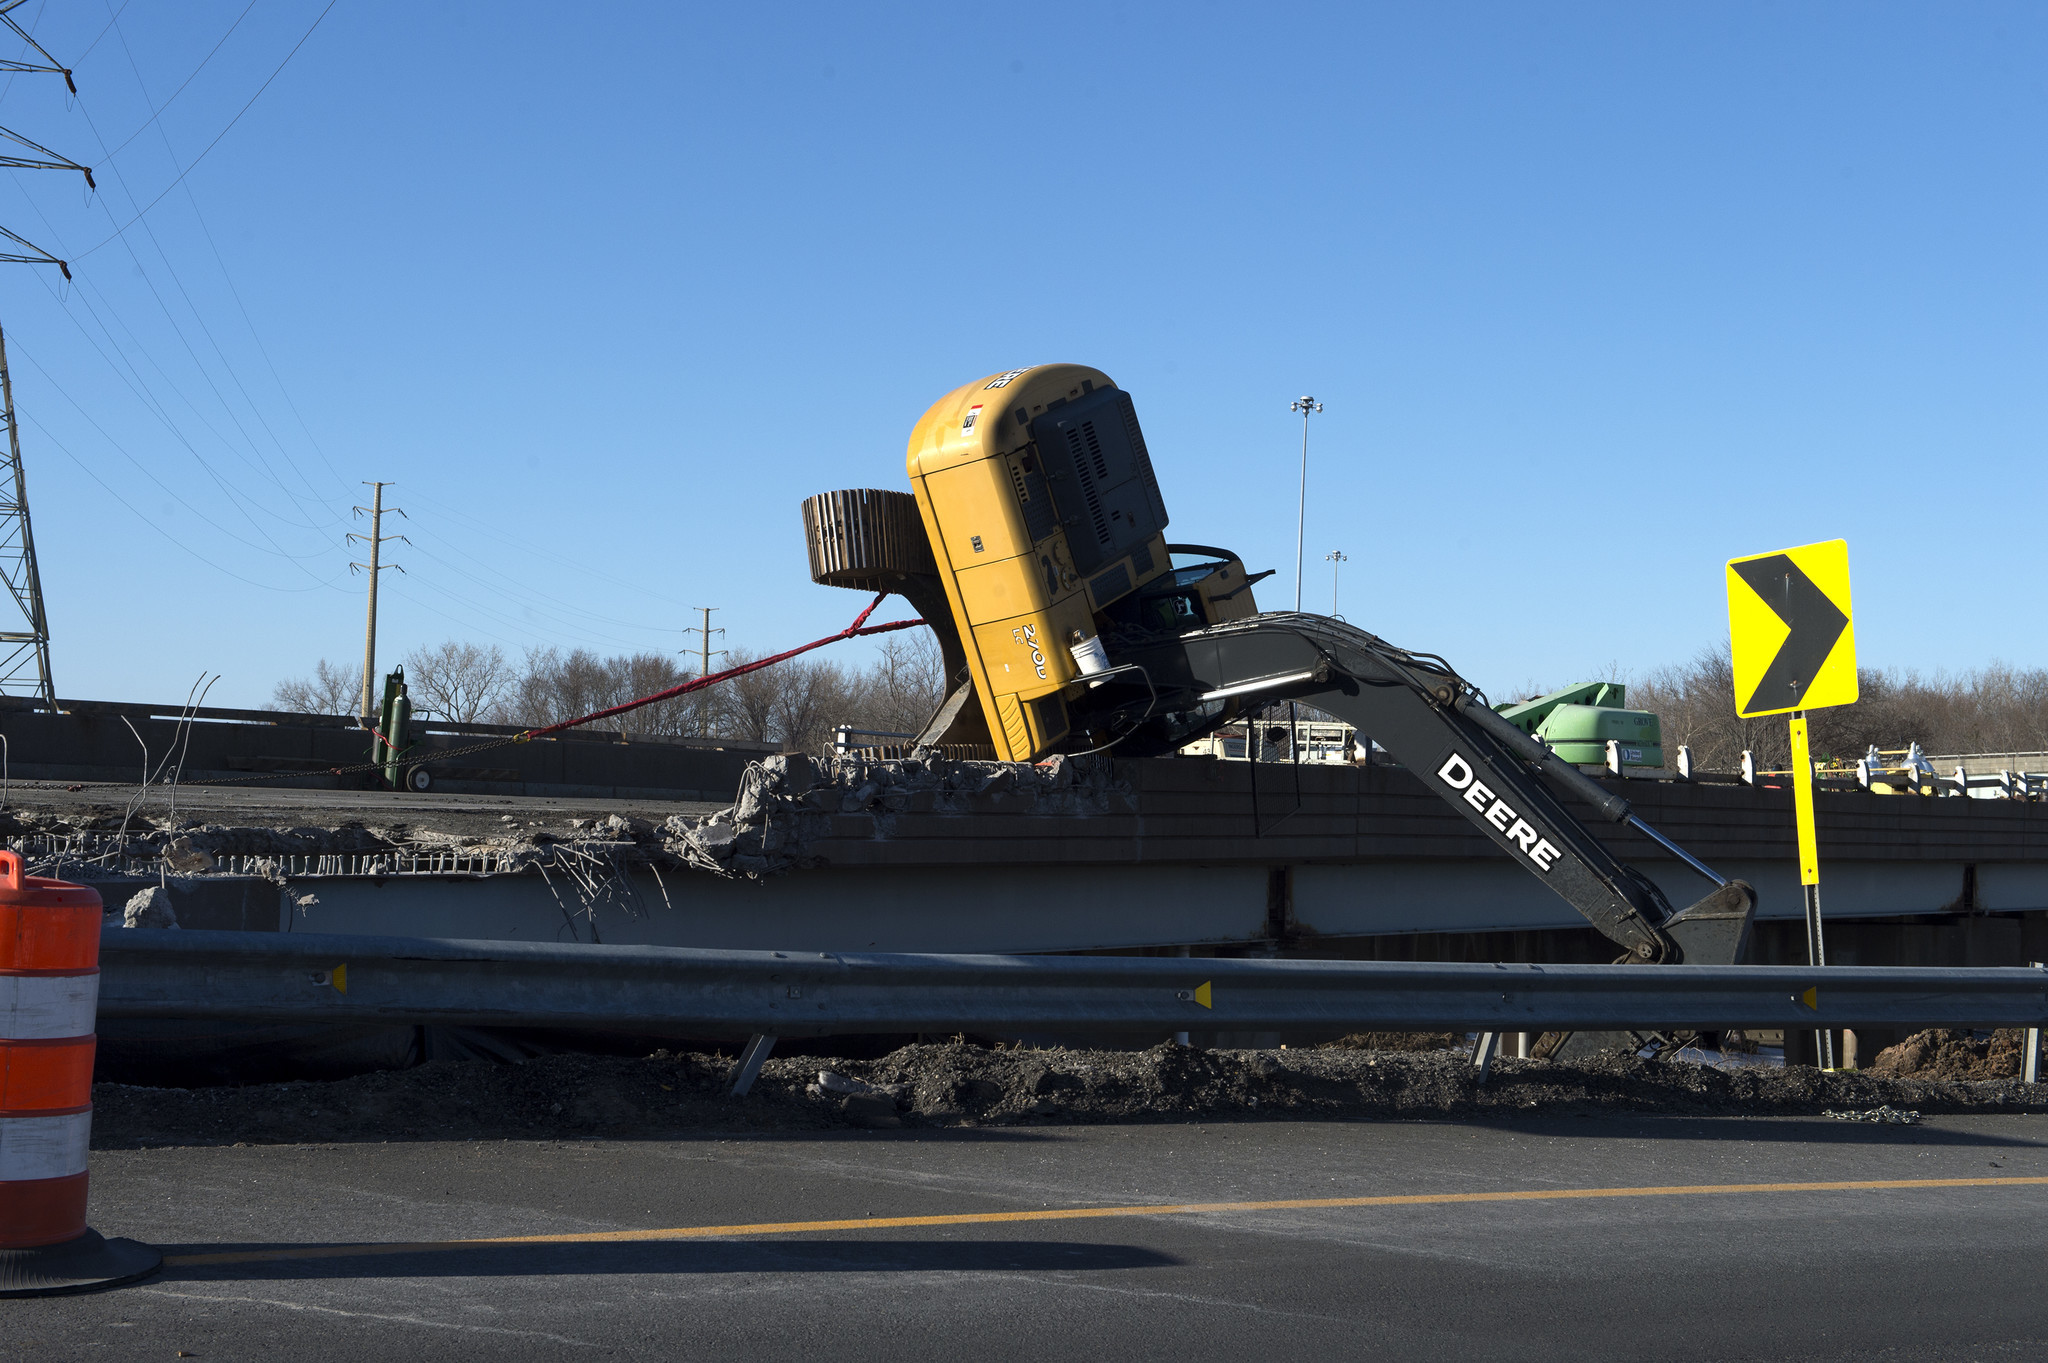 Police ID Operator Killed In Excavator Crash On Route 2 In